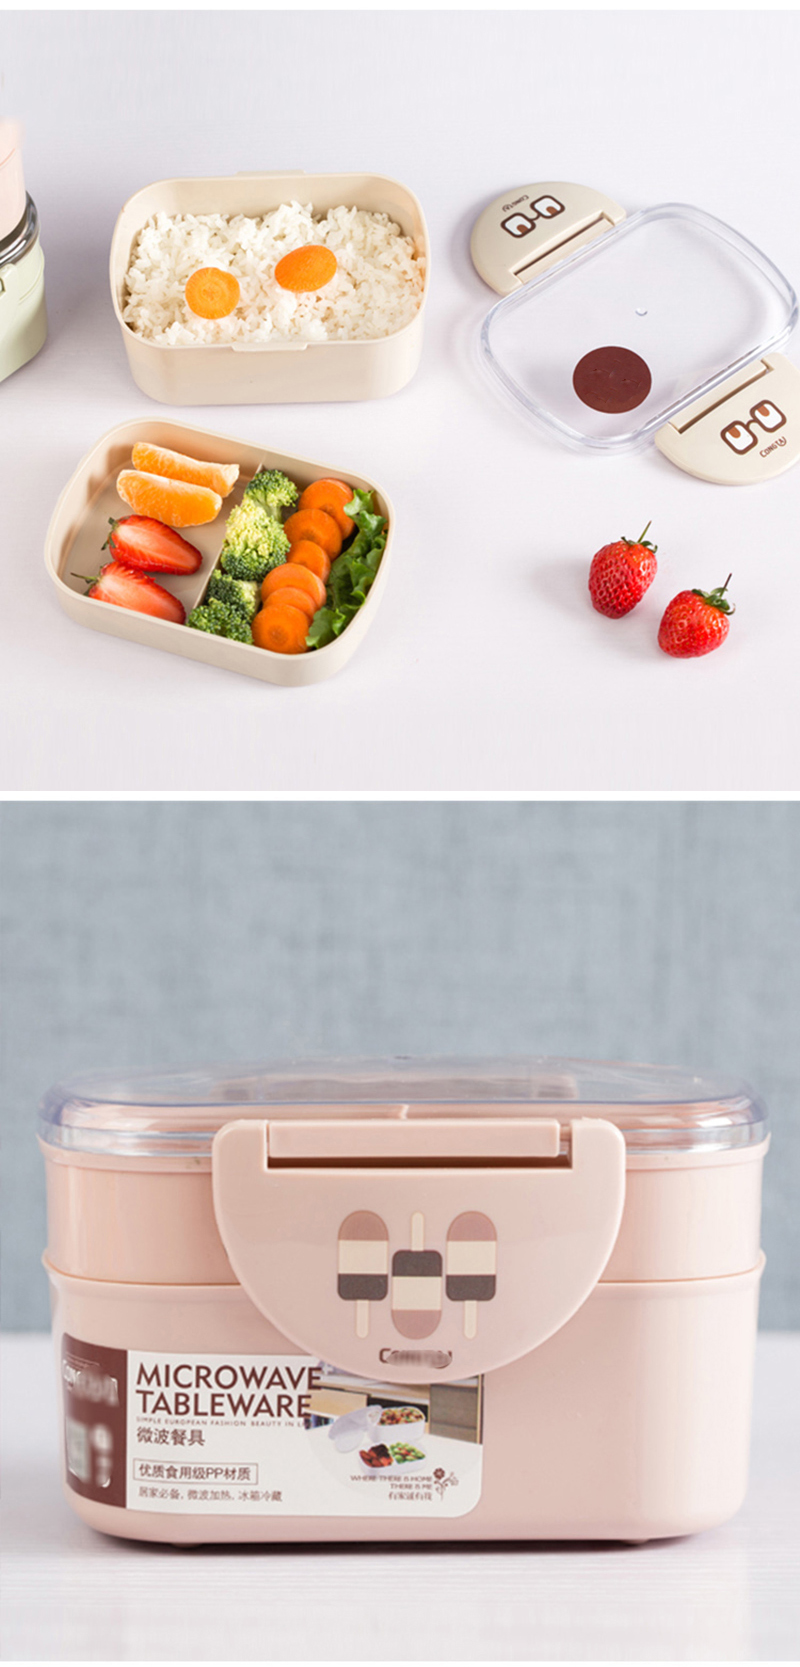 TUUTH Lunch Box Plastic Microwave Portable Double Layer Food Container Fruit Storage For Picnic School Office Workers C13